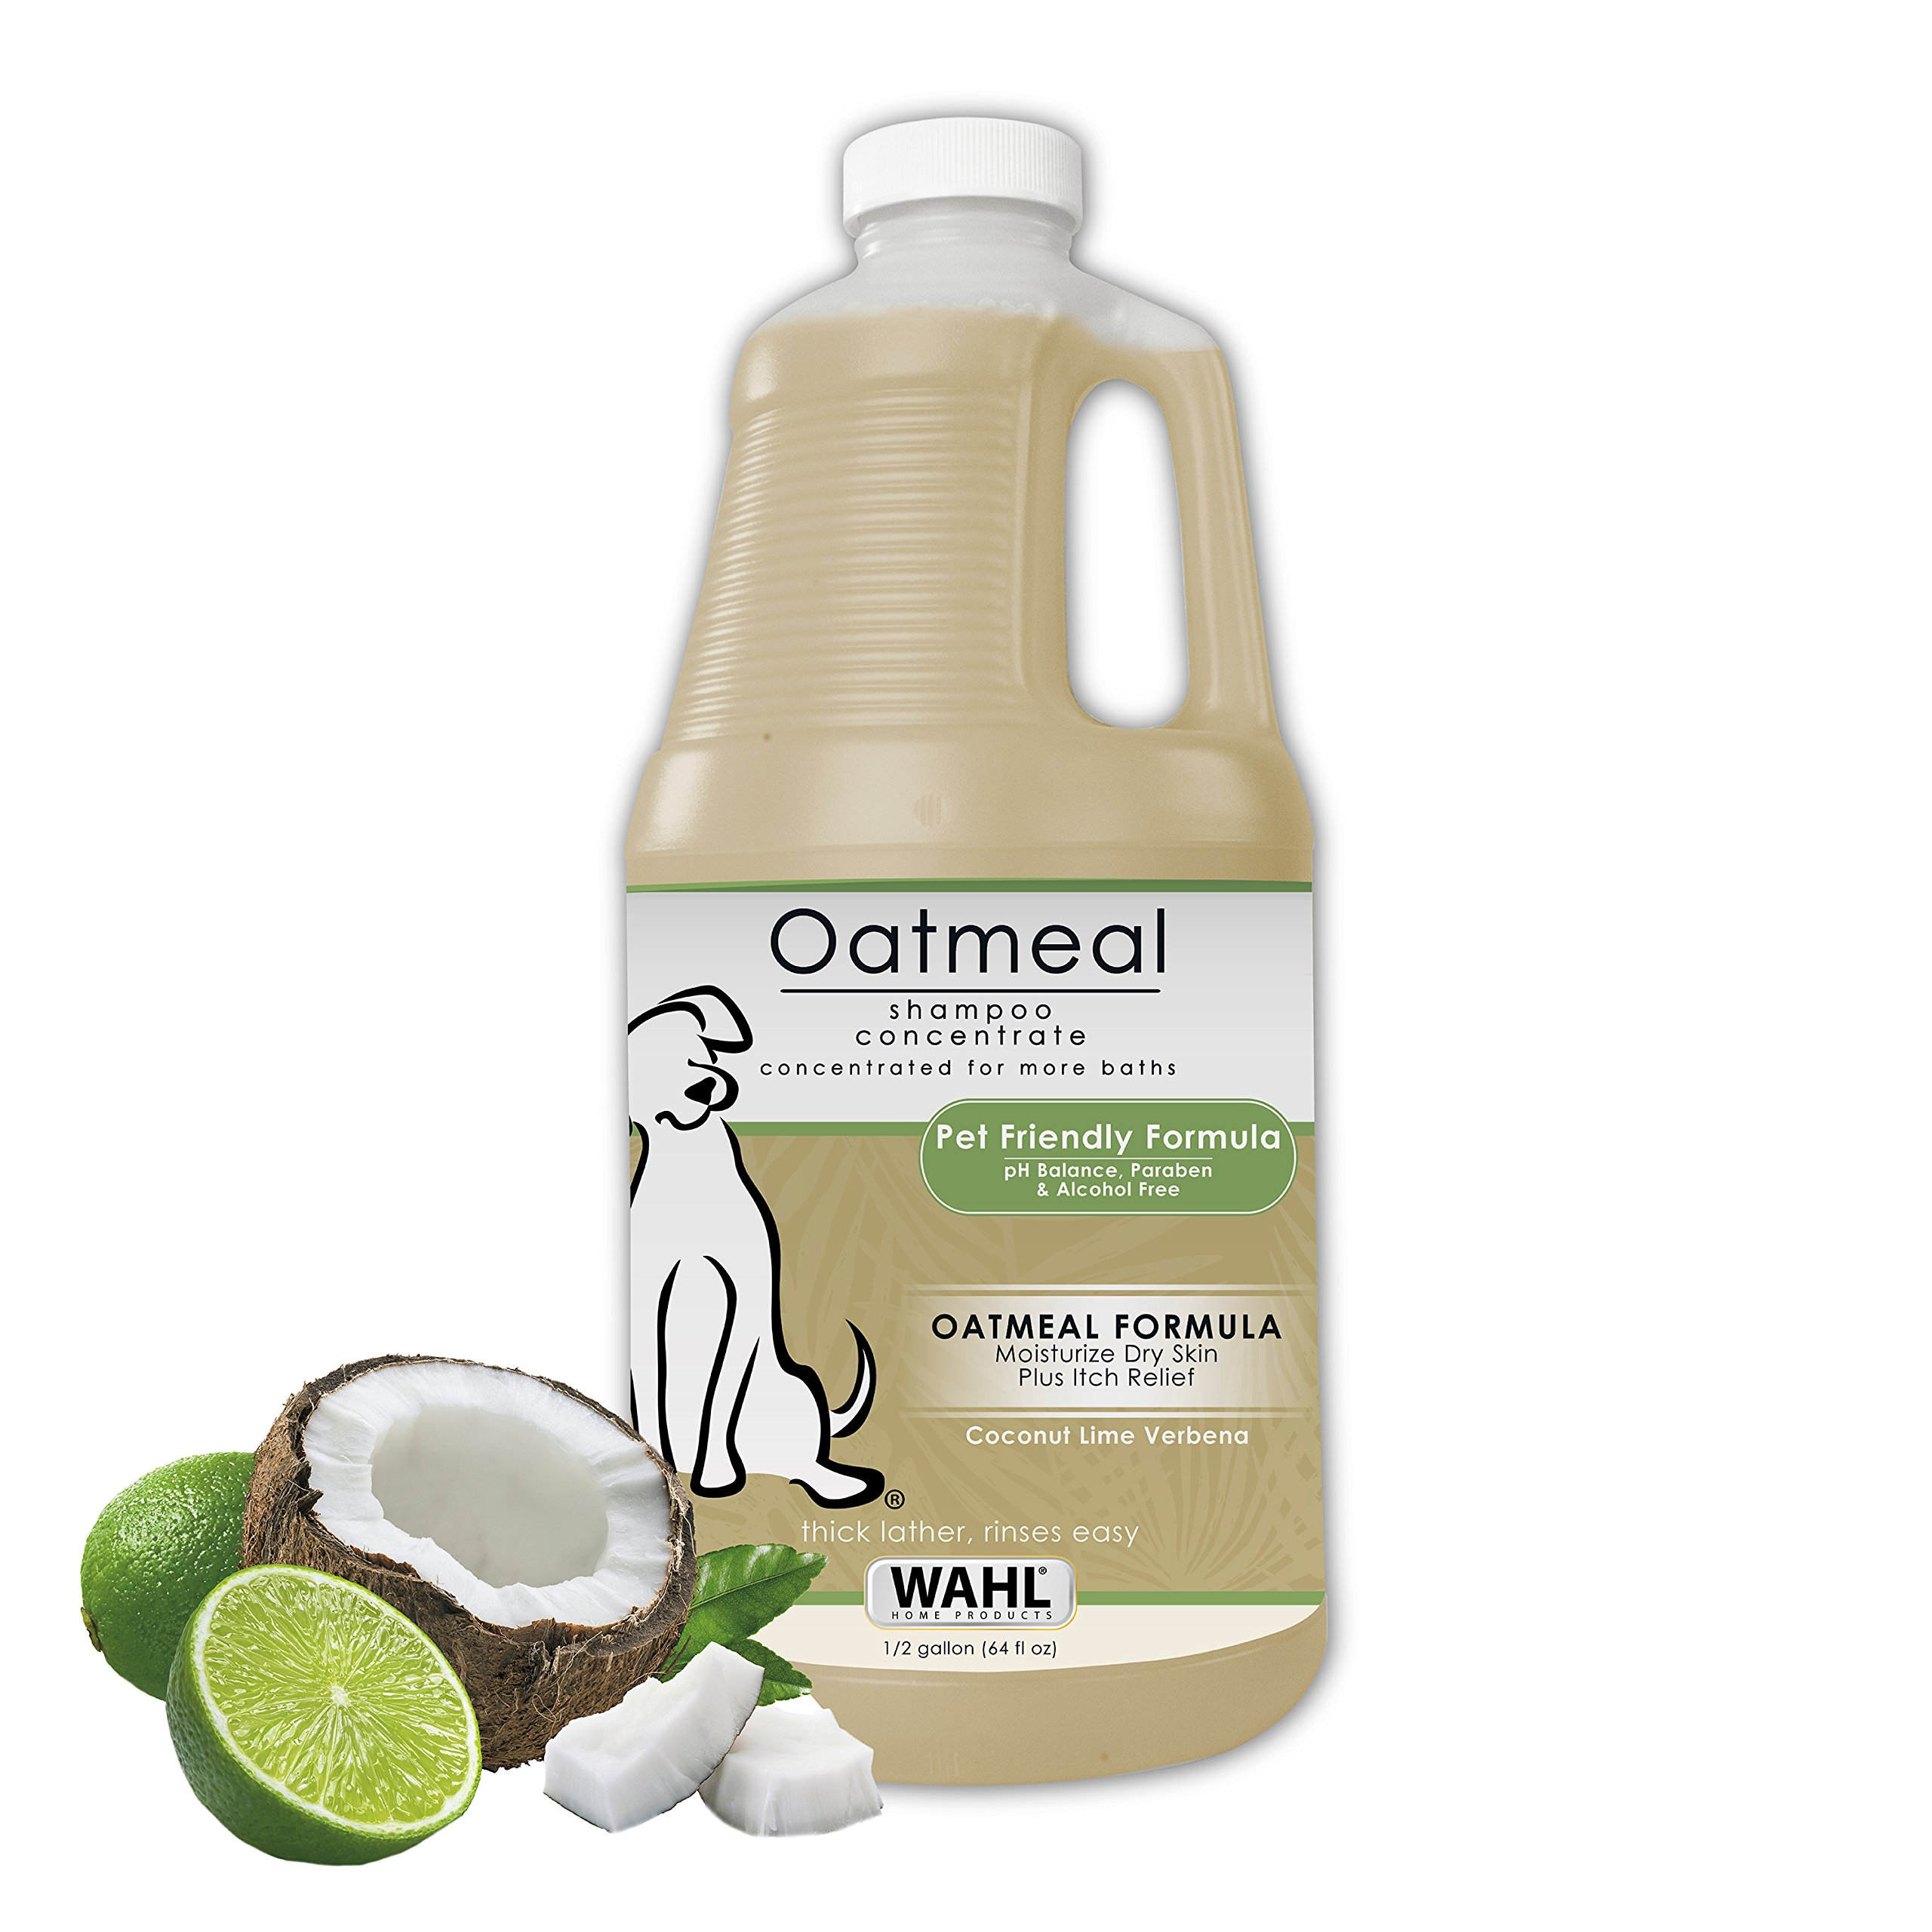 WAHL Dry Skin & Itch Relief Pet Shampoo for Dogs - Oatmeal Formula with Coconut Lime Verbena - 64 Oz